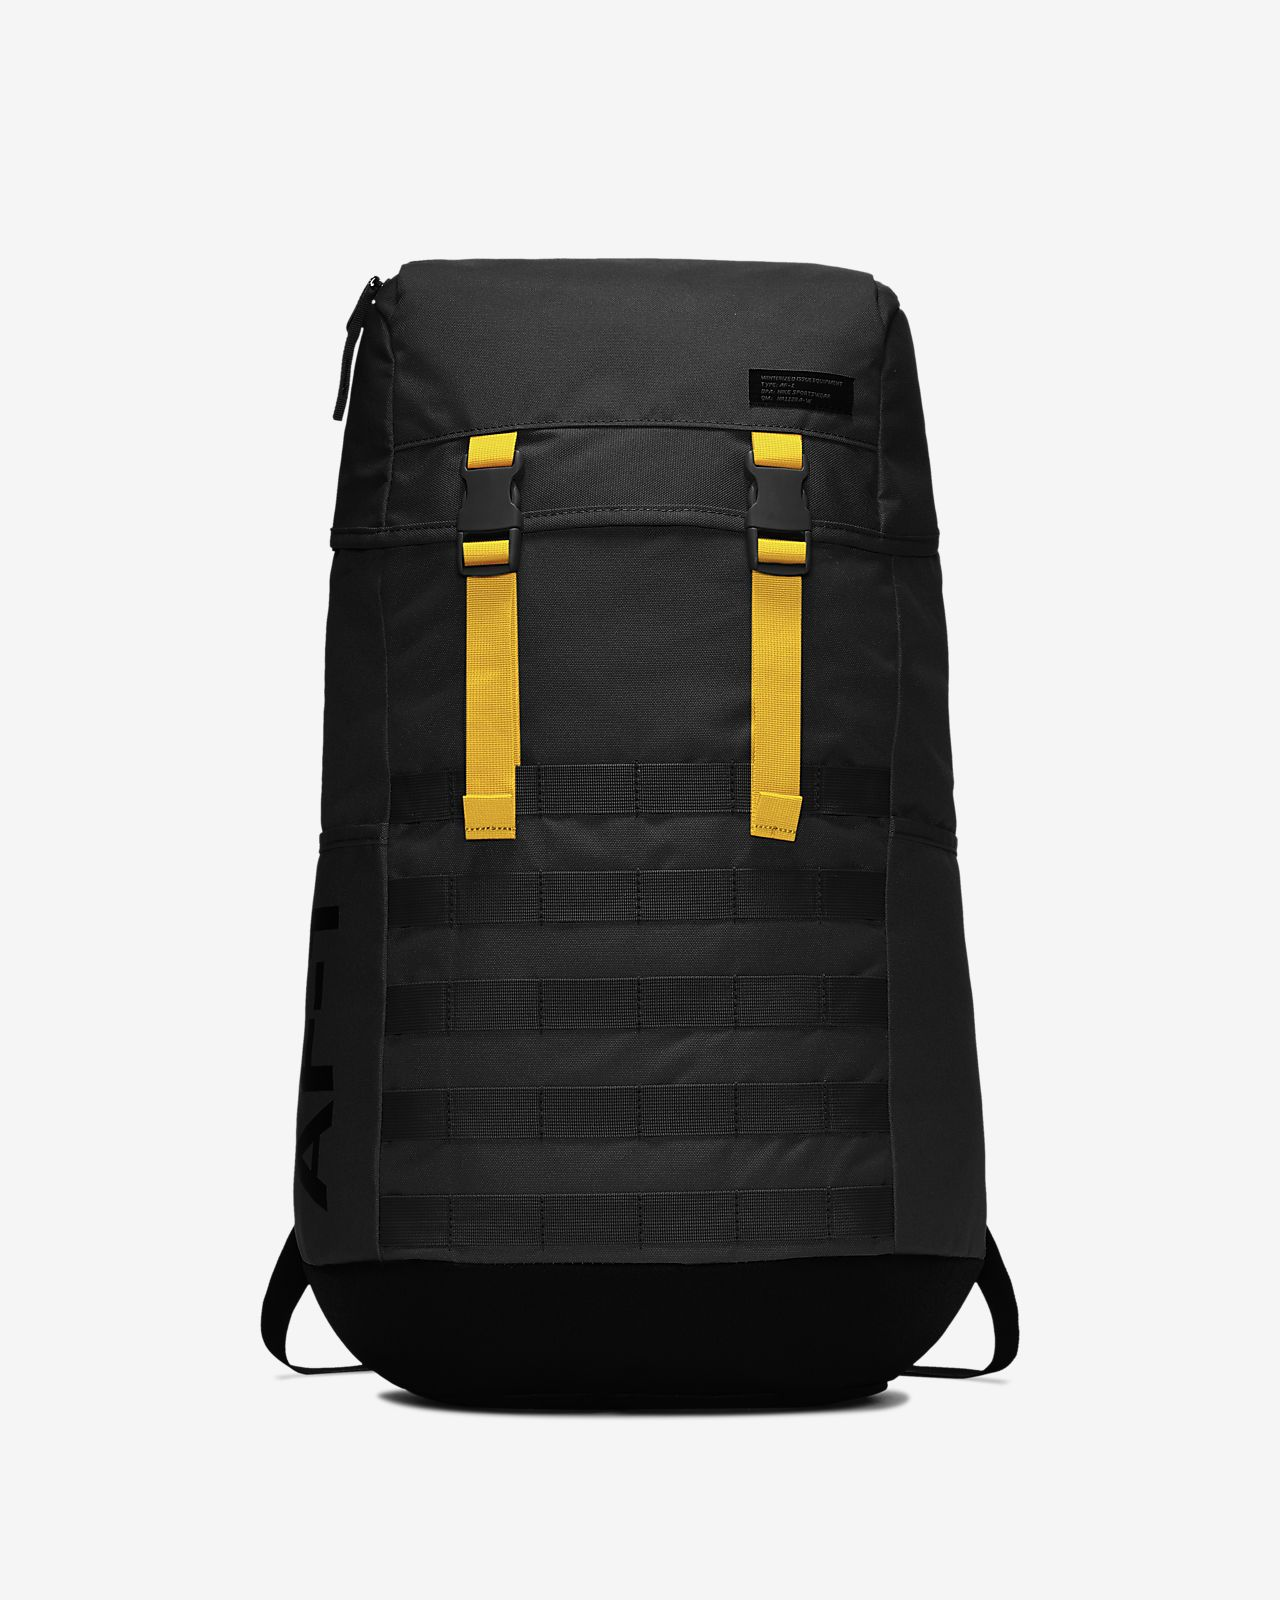 2eea70068f87 Low Resolution Nike Sportswear AF1 Backpack Nike Sportswear AF1 Backpack